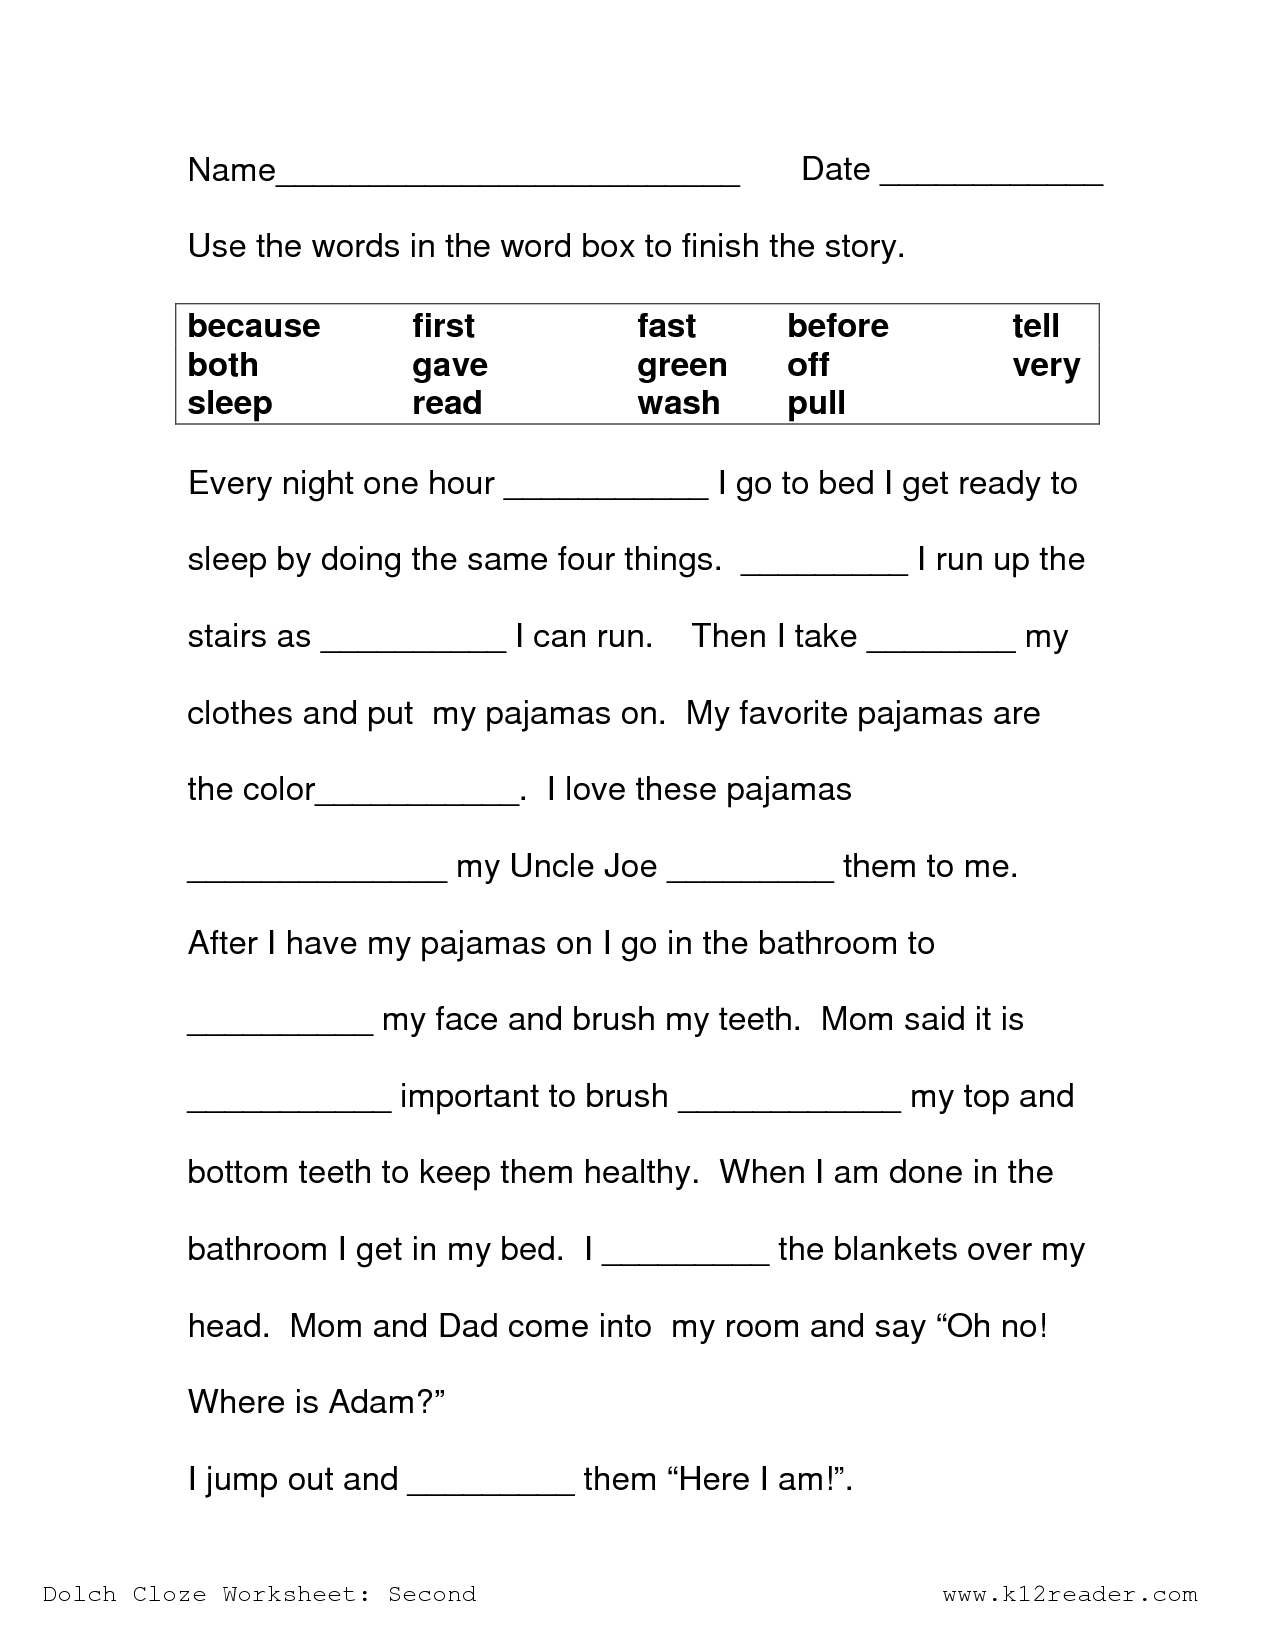 Worksheet Second Grade Reading Comprehension Worksheets Free reading worksheets 2nd grade pichaglobal k5 related